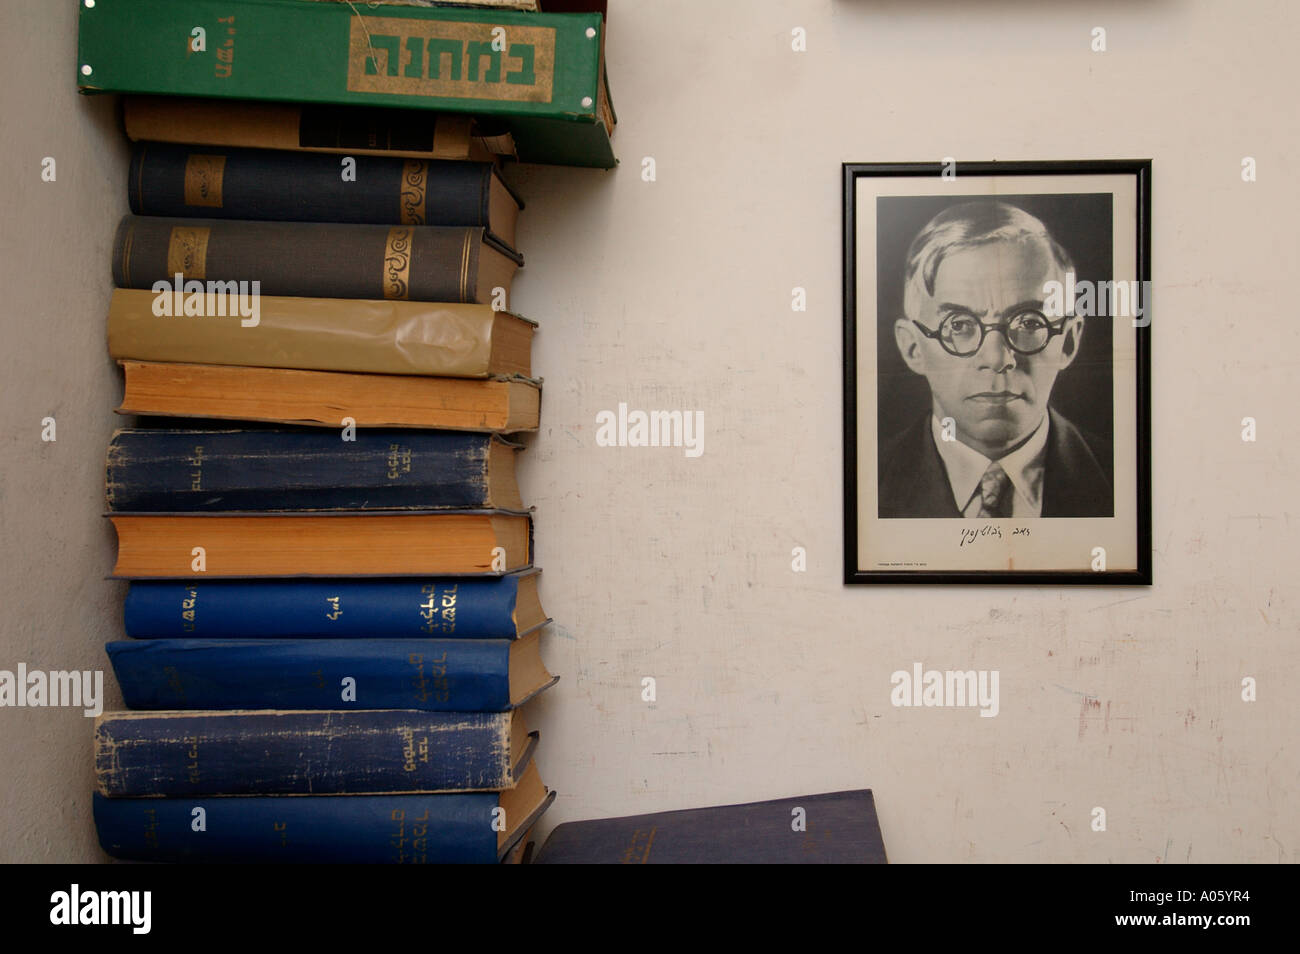 Portrait of Zionist Ze'ev Jabotinsky who passionately advocated a Jewish state in a second hand books store in Jerusalem Israel - Stock Image